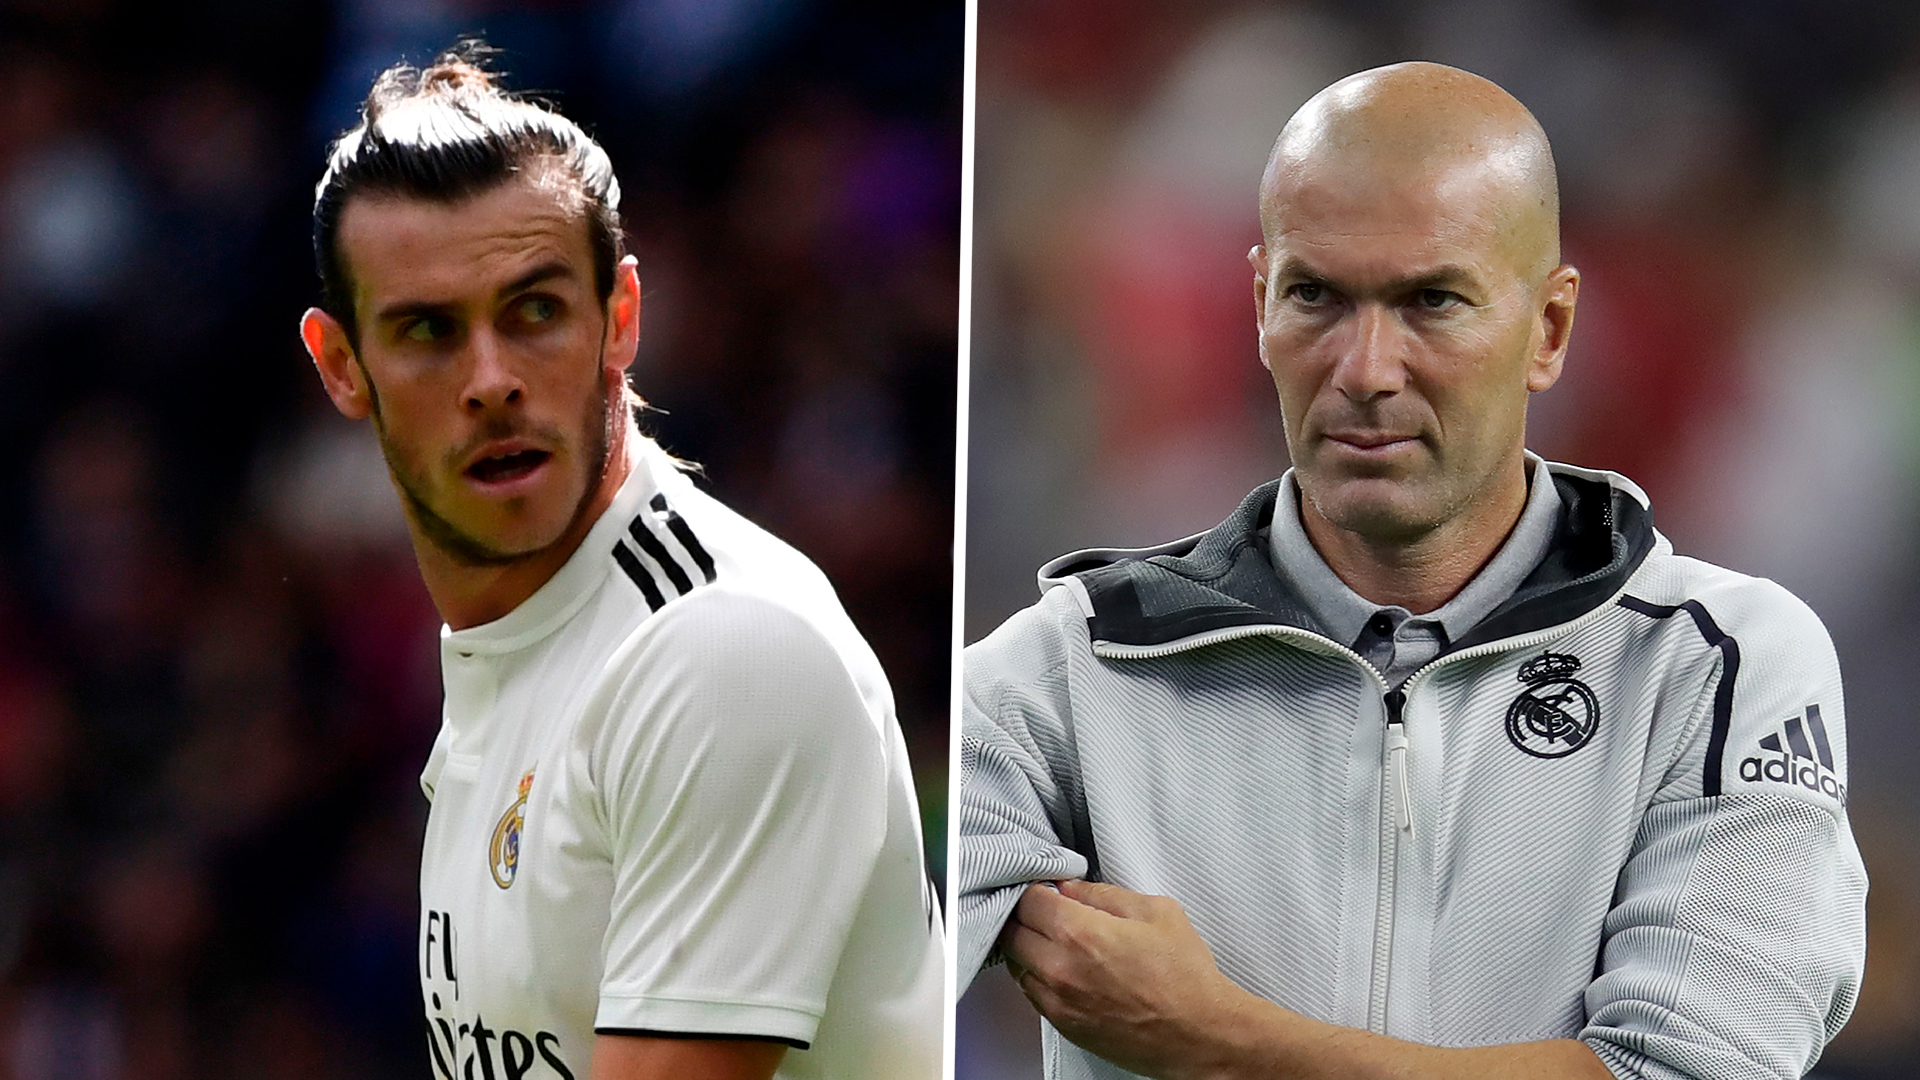 'Zidane is a disgrace' - Bale's agent slams Real Madrid boss over exit talk